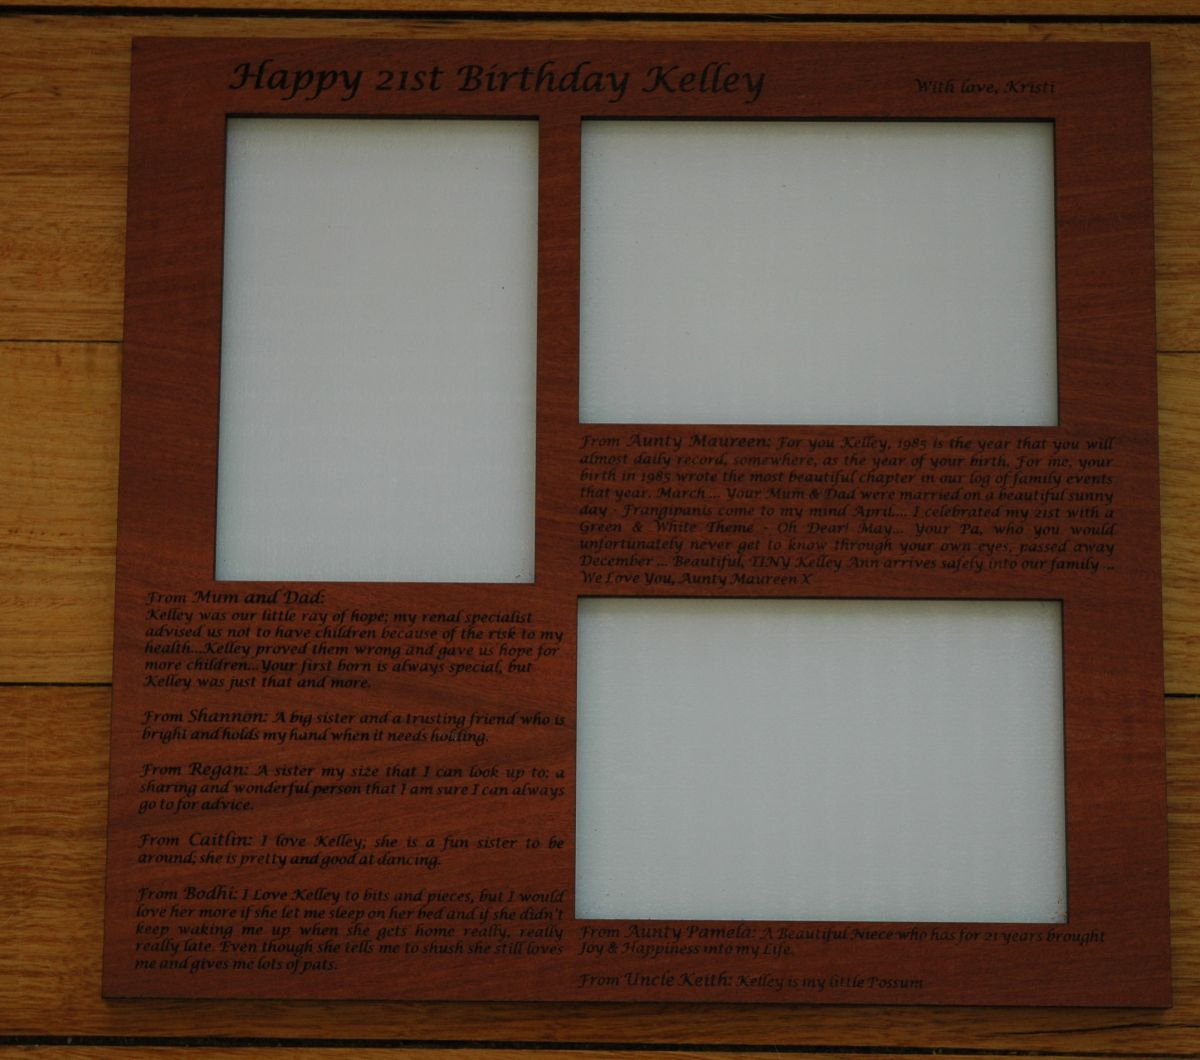 Thumb_Red gum photo frame engraved 3 photo's